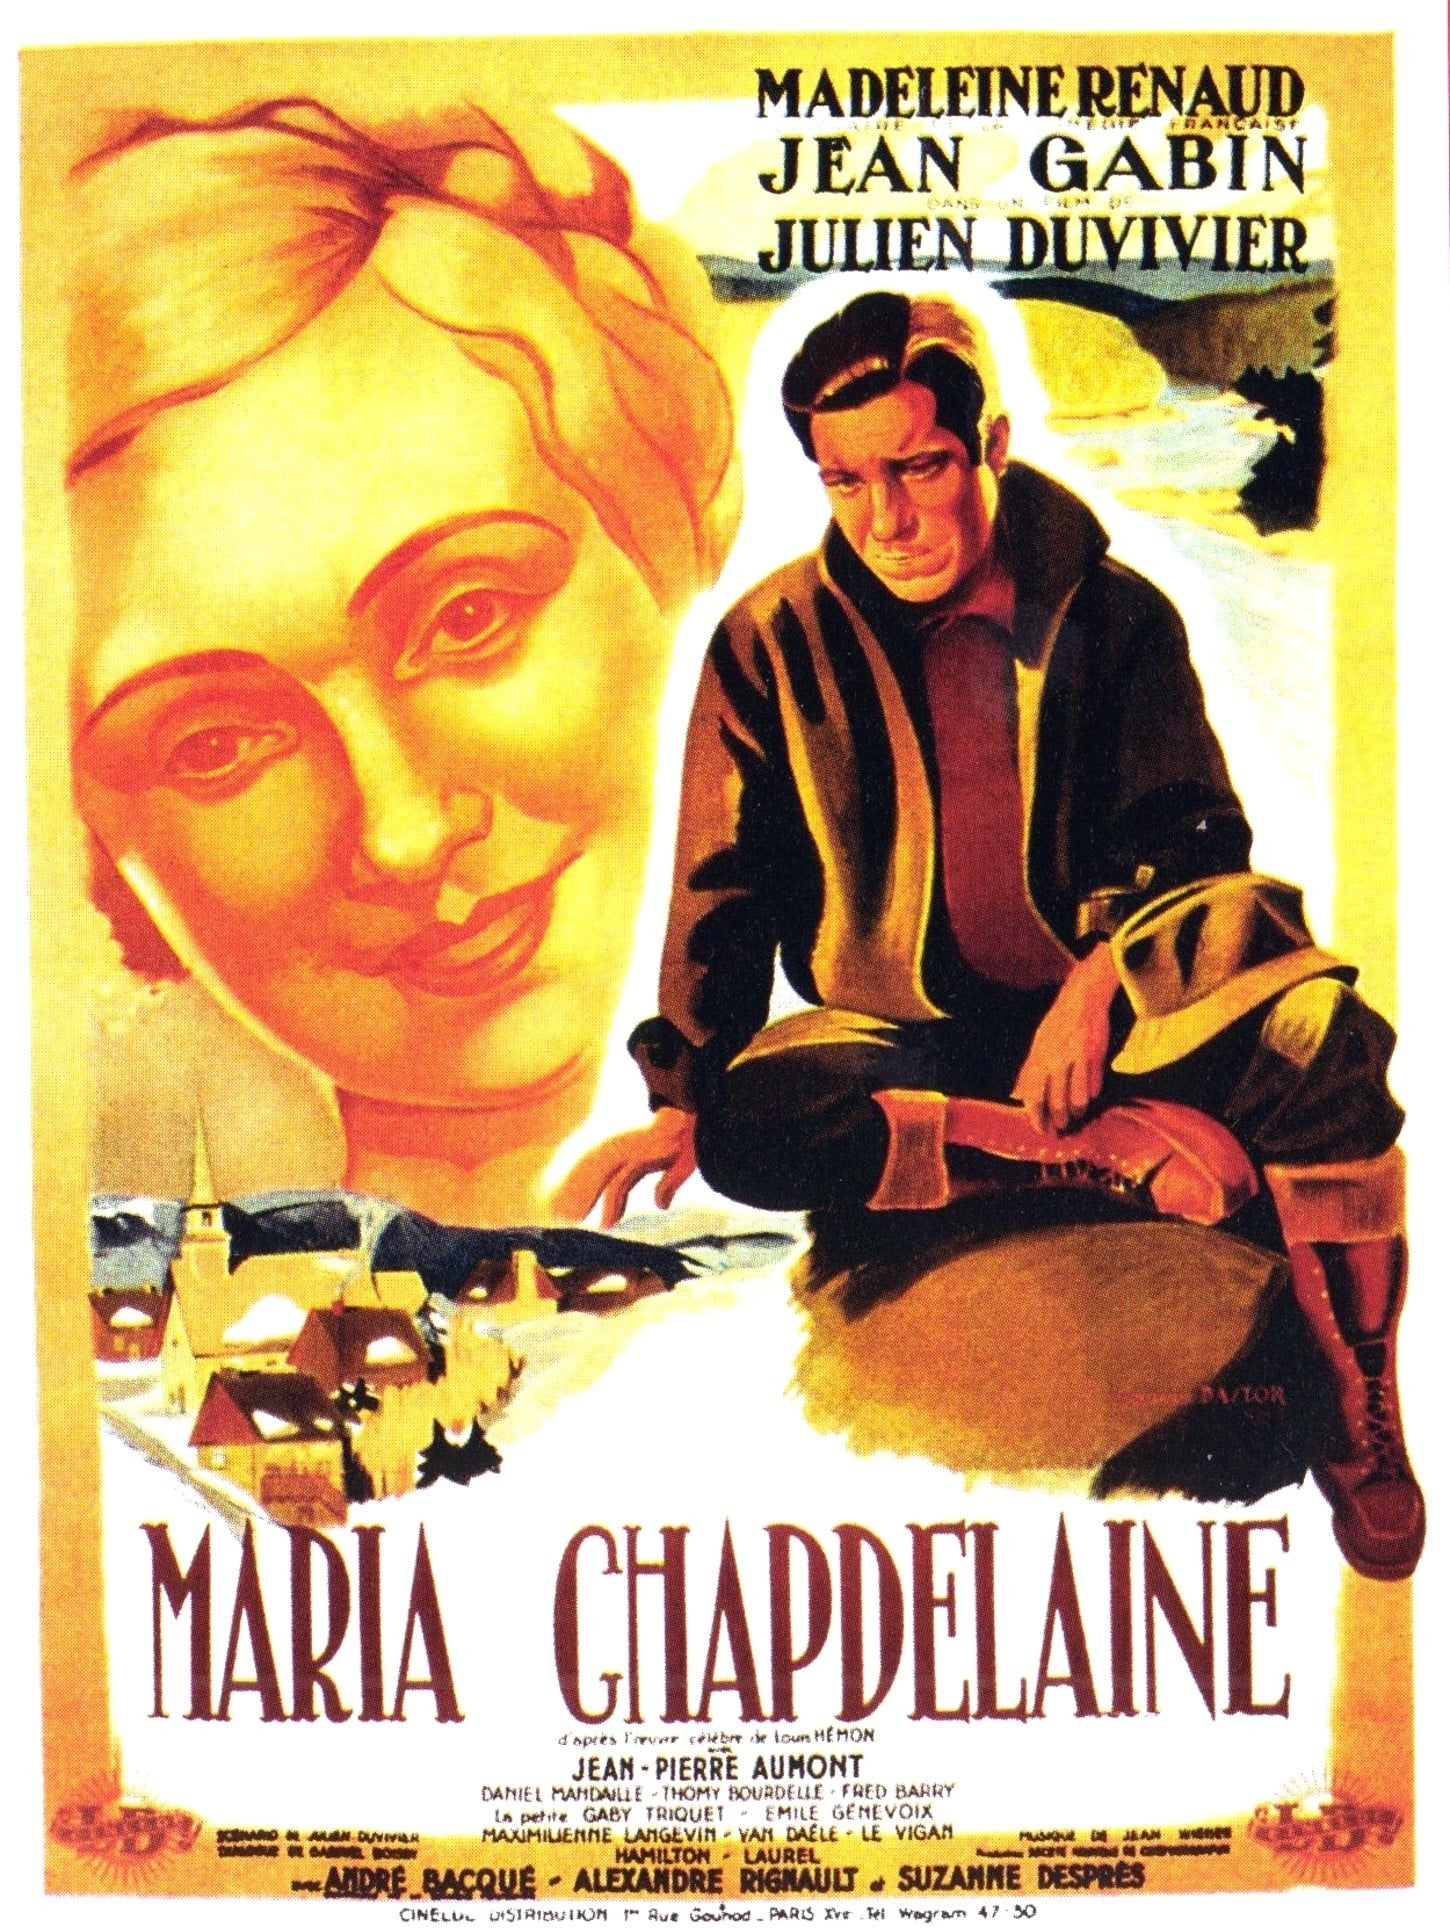 Maria Chapdelaine (1934)